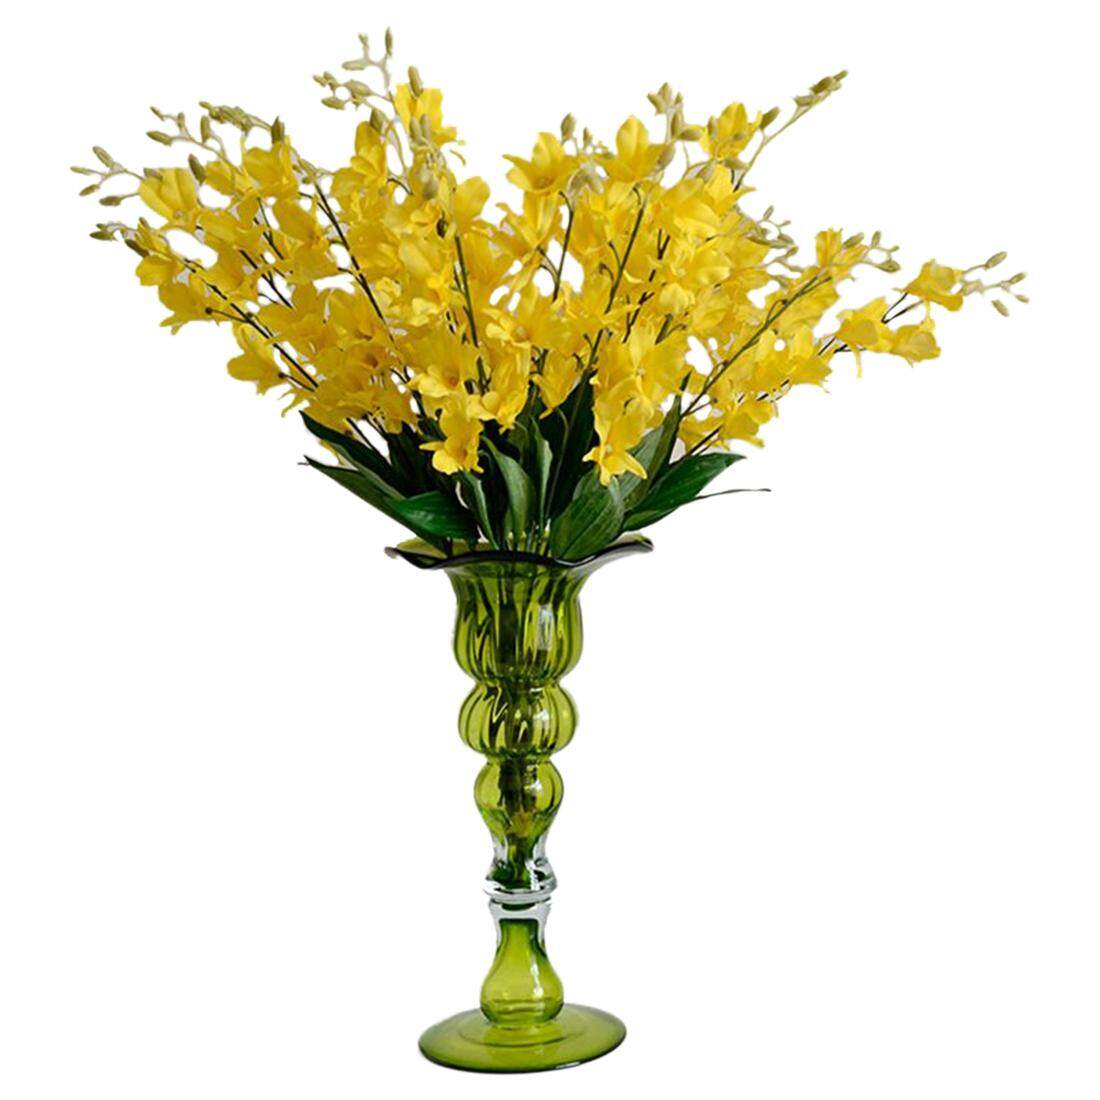 Home Artificial Flowers Plants Buy Home Artificial Flowers